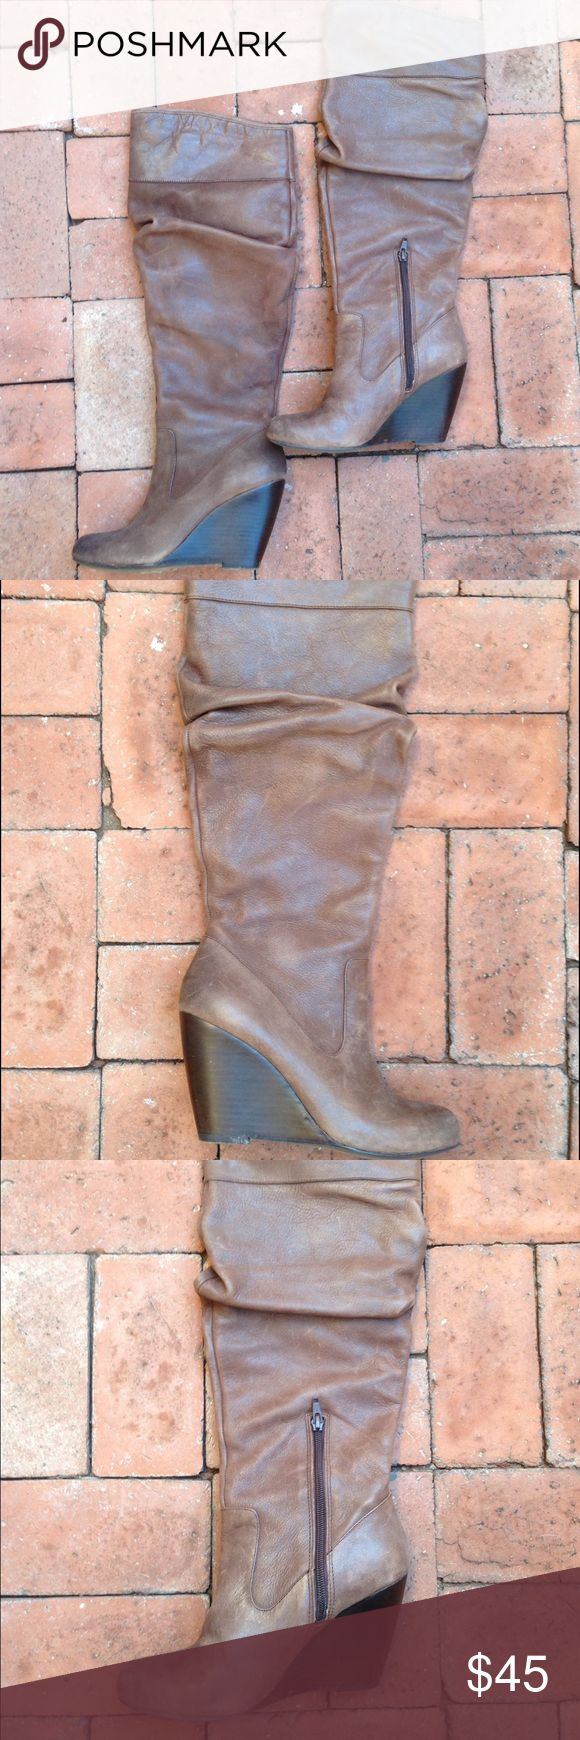 Jessica Simpson Below The knee Wedge Boots Leather boots in amazing condition. The wedge makes them comfortable for all day wear. The fall just below the knee. Jessica Simpson Shoes Winter & Rain Boots